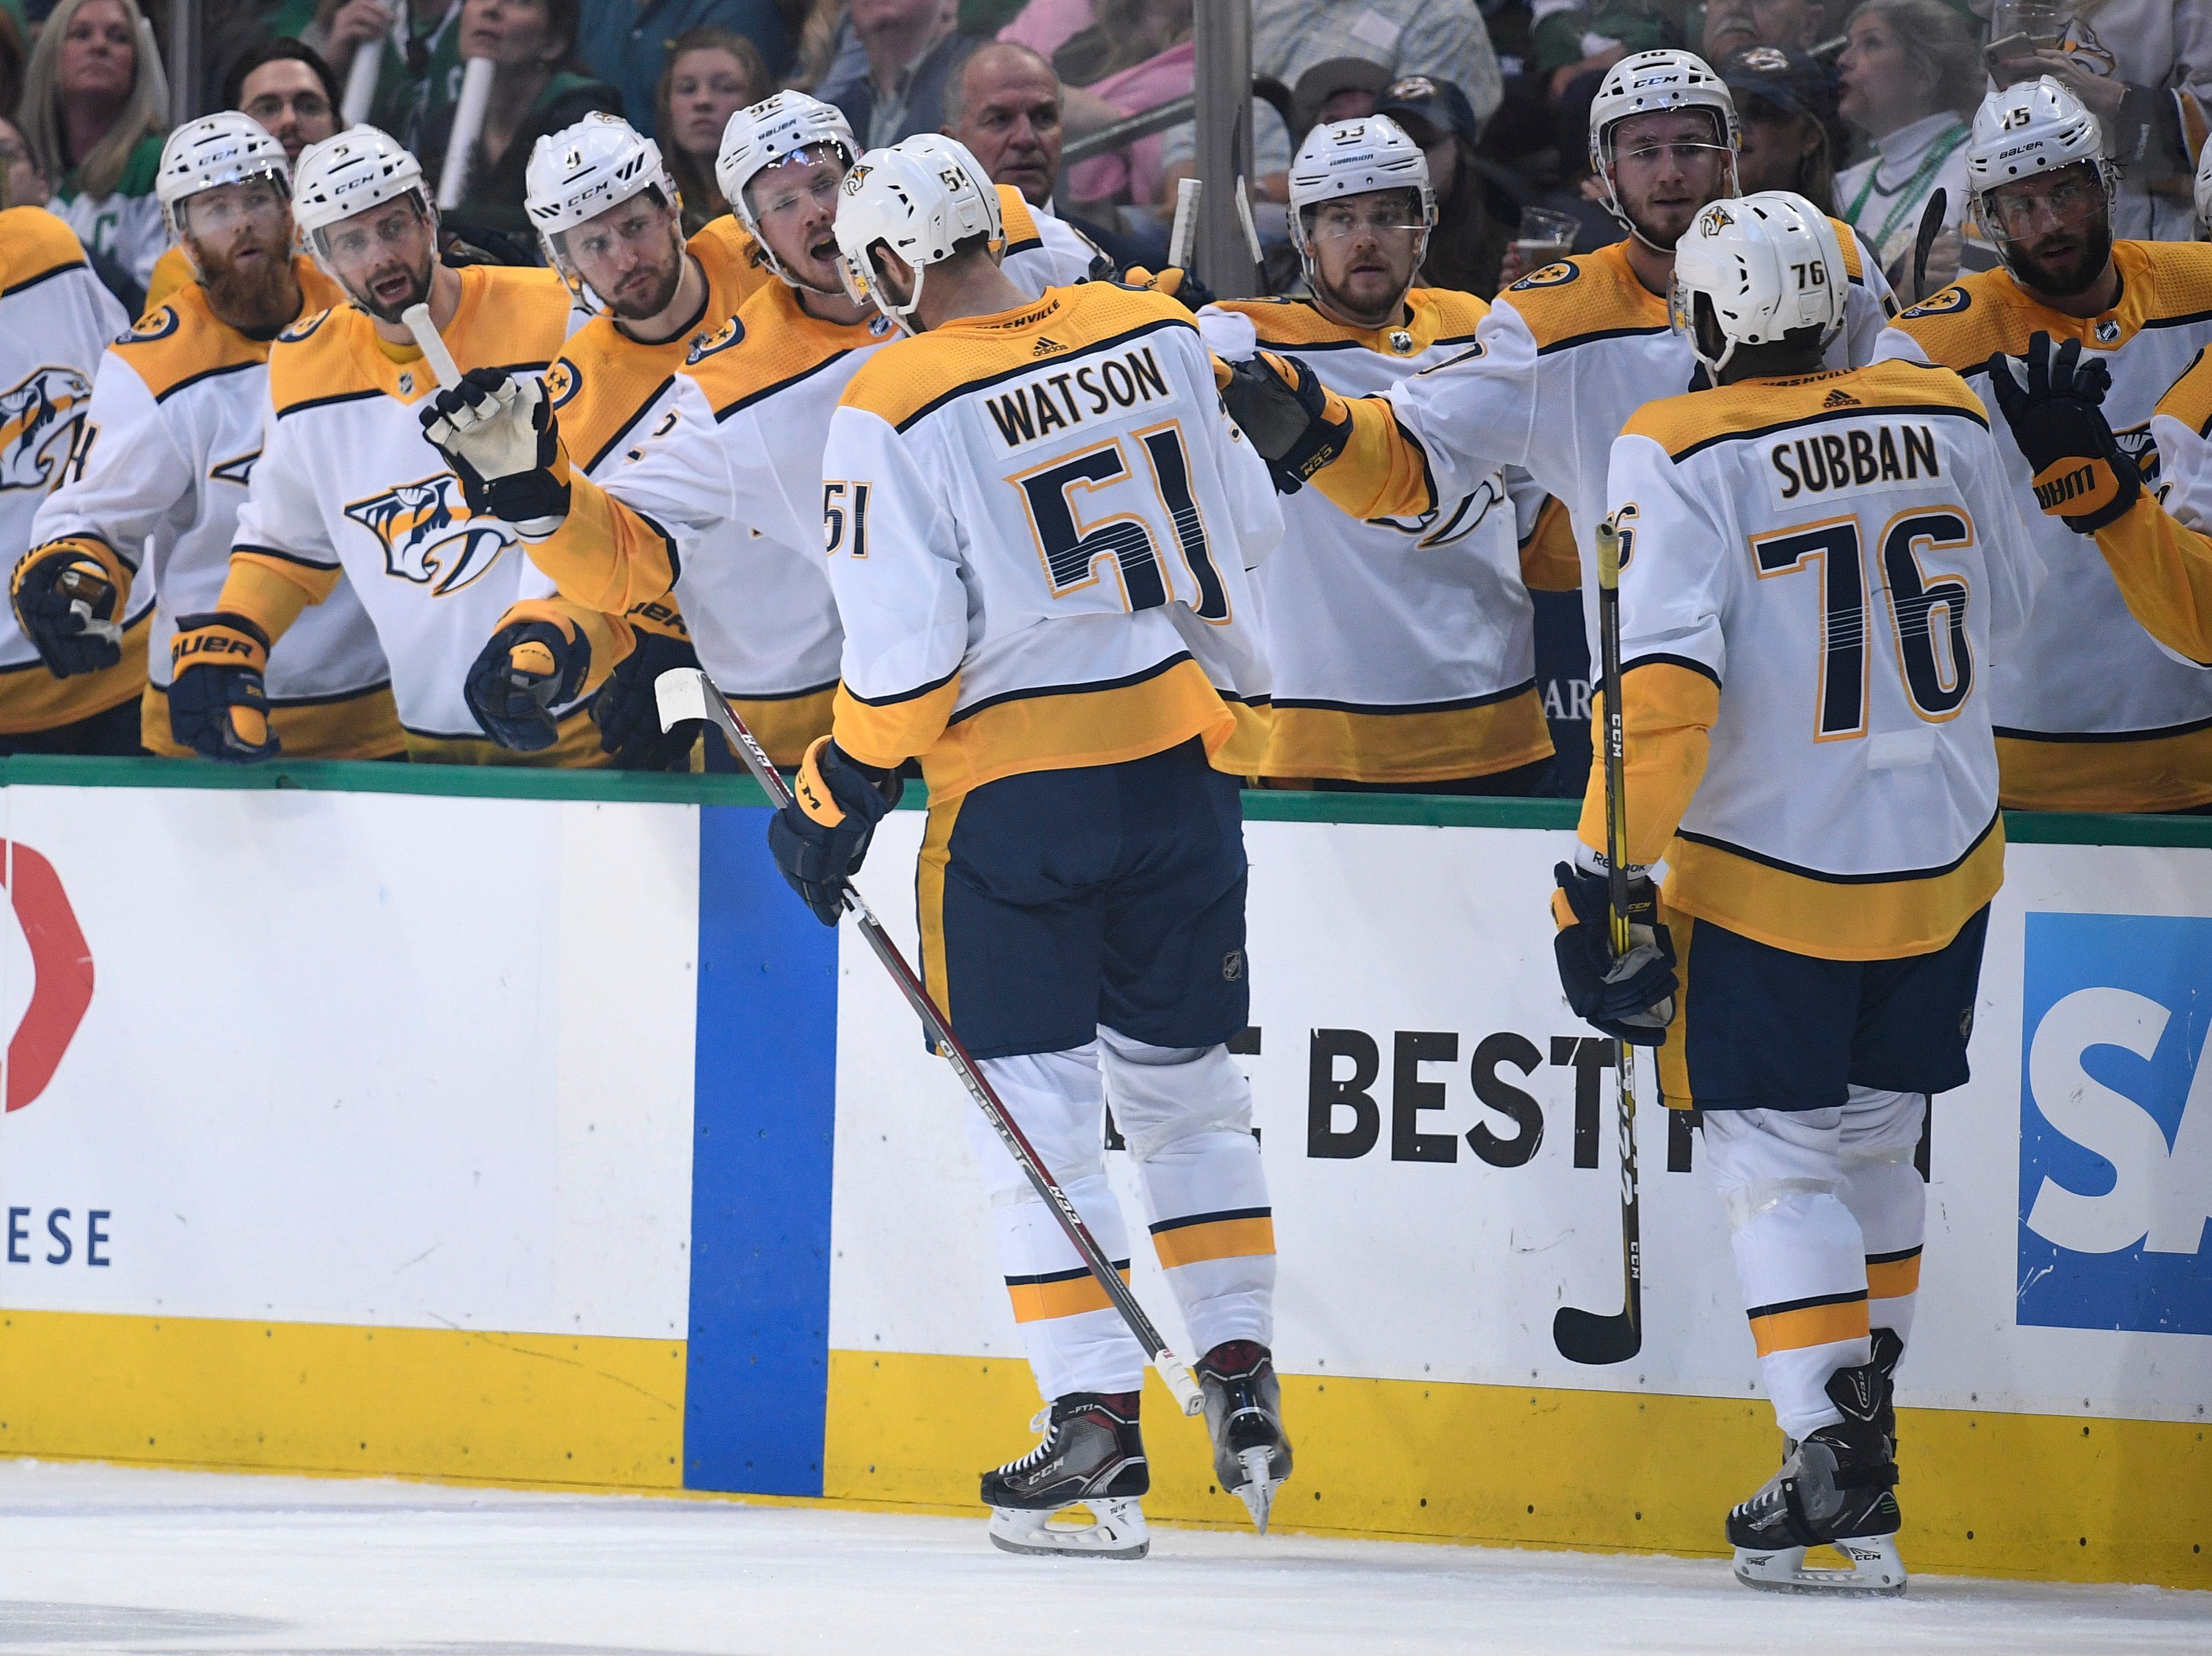 Nashville Predators left wing Austin Watson (51) celebrates his goal during the first period of the divisional semifinal game at the American Airlines Center in Dallas, Texas, Monday, April 22, 2019.